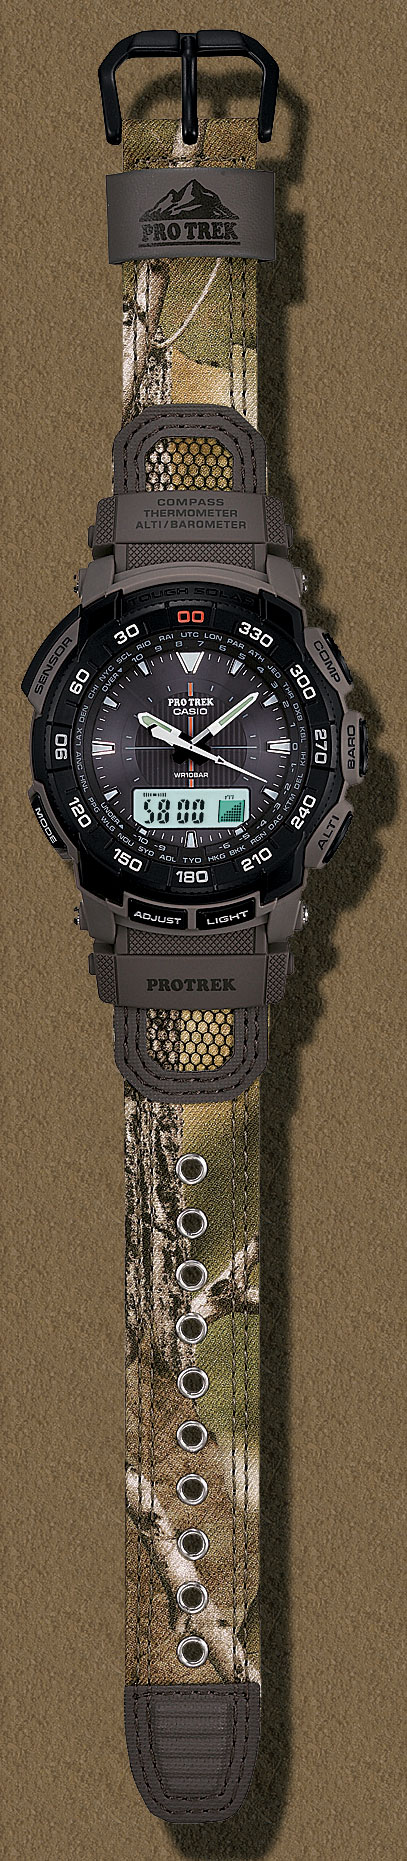 prg-550b-5_camo_2012 protrek new outdoors